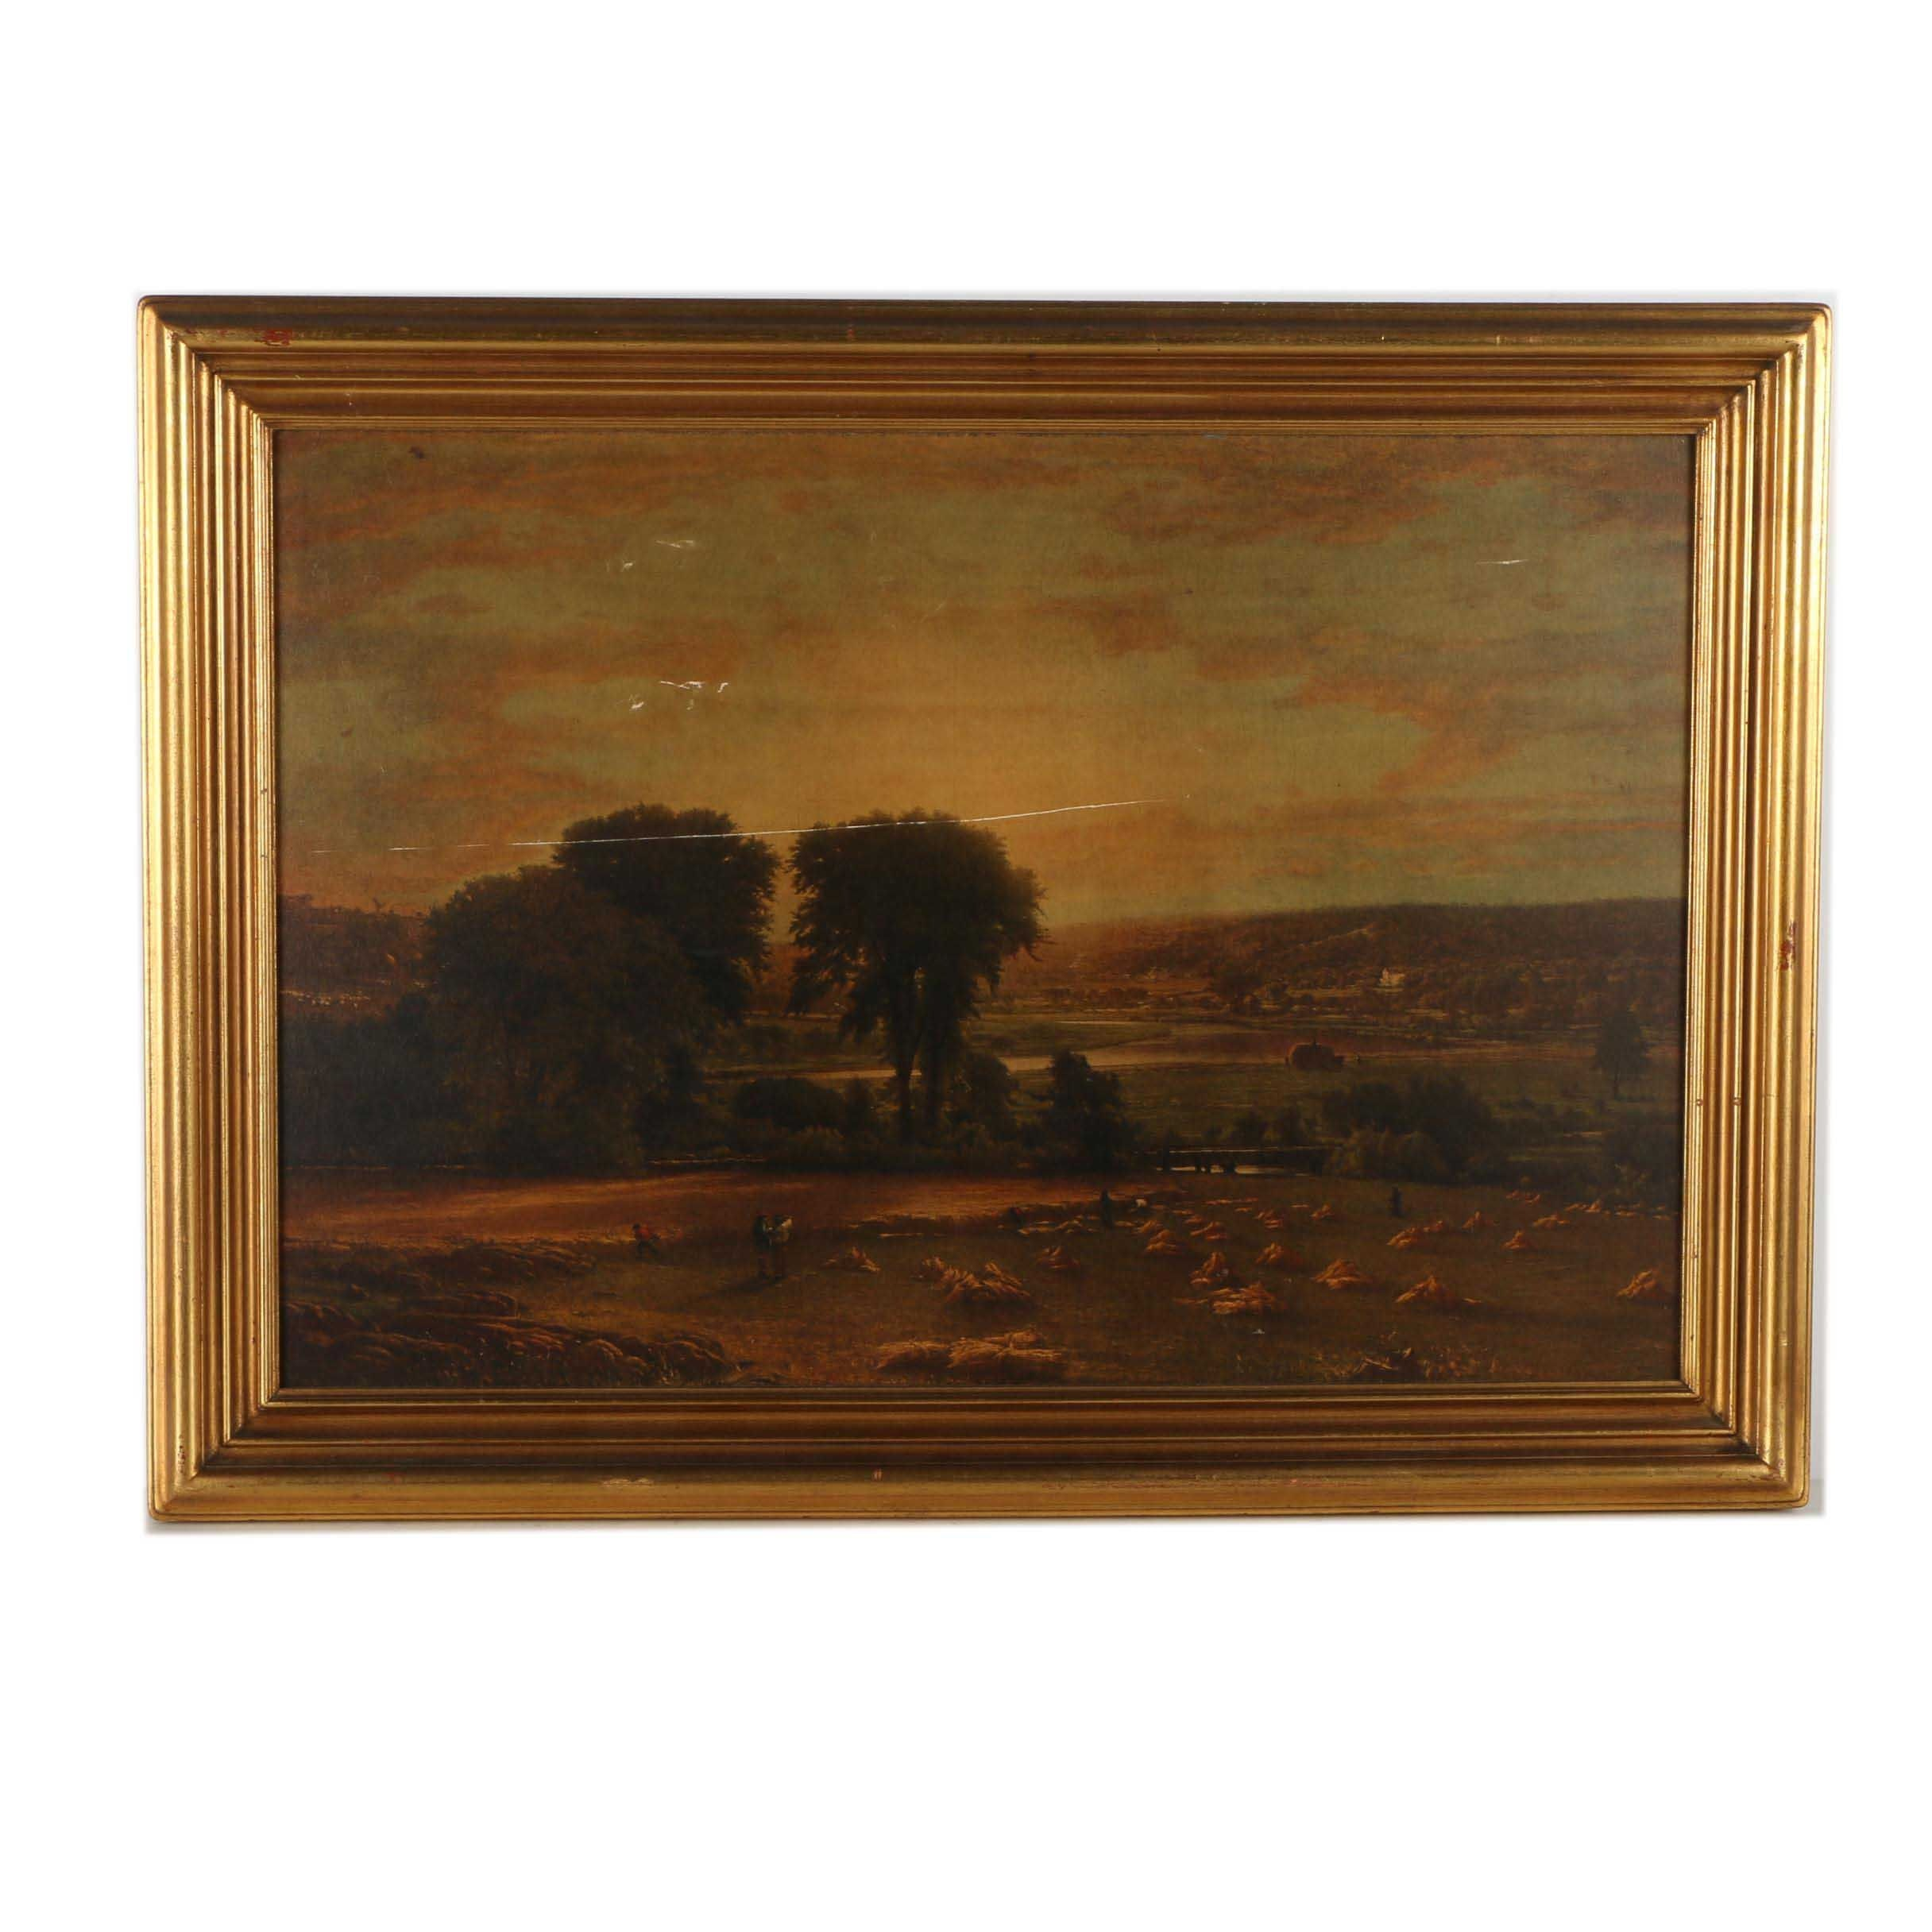 "Giclee Print on Board After George Inness Oil Painting ""Peace and Plenty"""